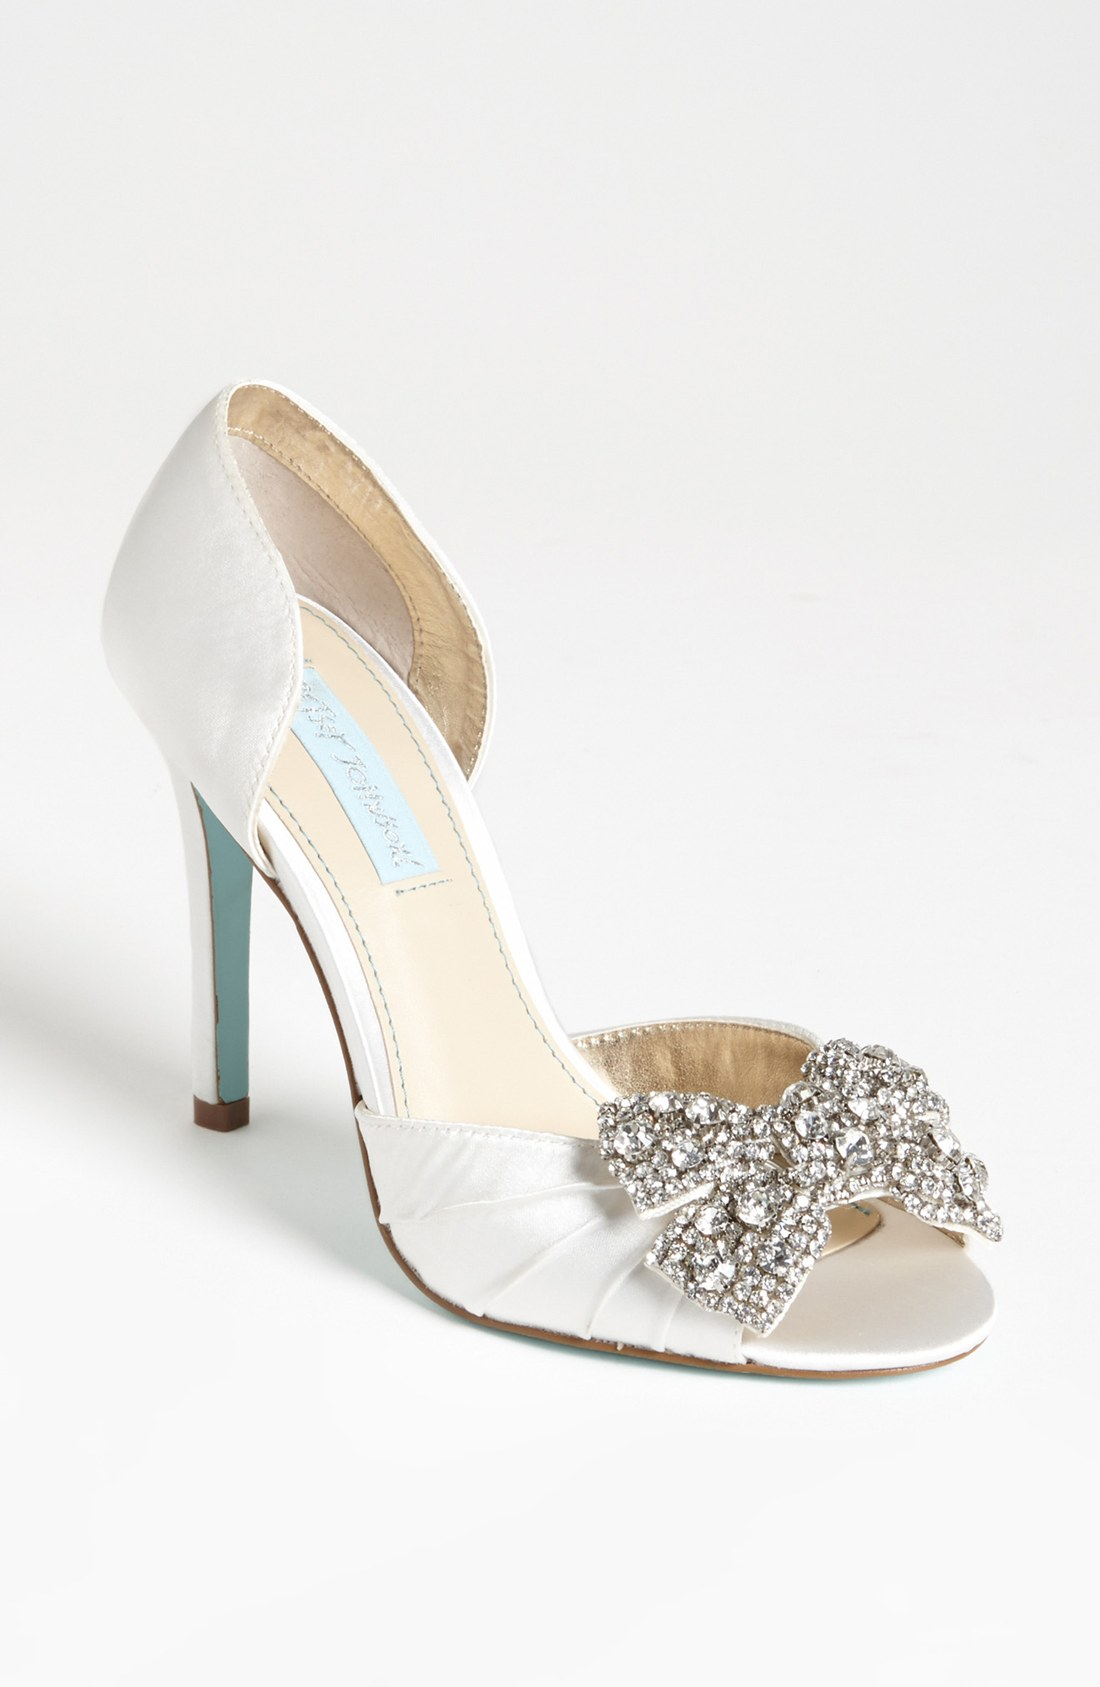 Blue by Betsey Johnson - Women's Bridal Shoes SummitFashions - Women's Bridal Shoes Blue By Betsey Johnson - Women's Bridal Shoes Bamboo - Women's Bridal Shoes Badgley Mischka White NORDSTROM $ $ Bella Belle. Women's Bella Belle Anita Illusion Lace Cross Strap Pump $ at NORDSTROM.